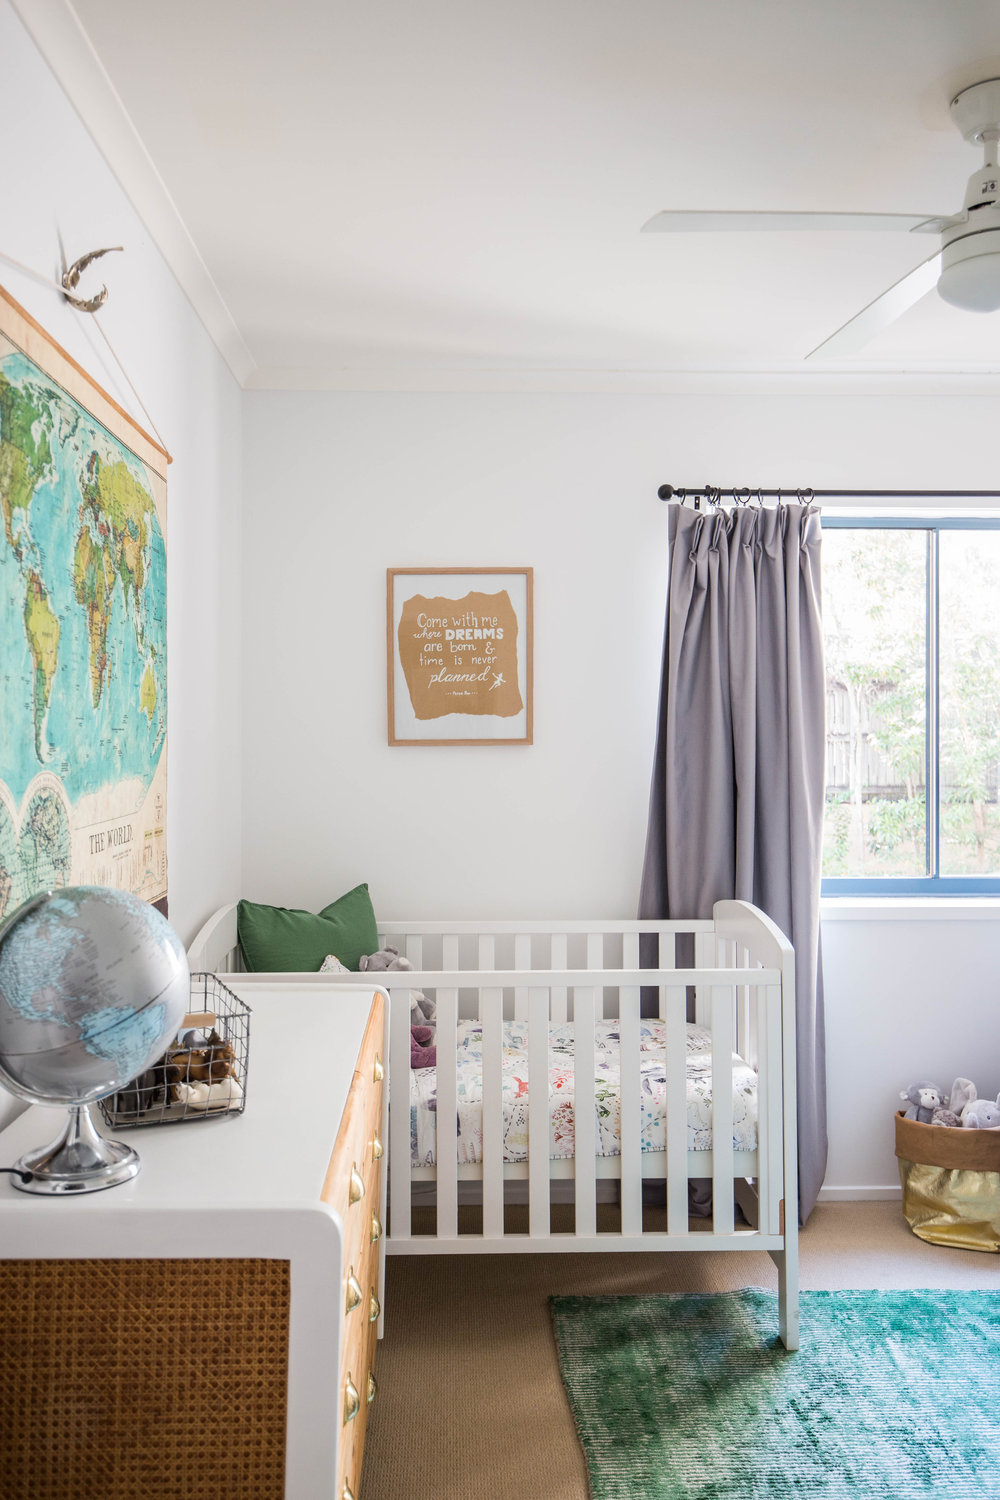 Tanika's Baby Room - Nursery - Interior Design - Tanika Blair Stying & Photography - IMG_8926.jpg